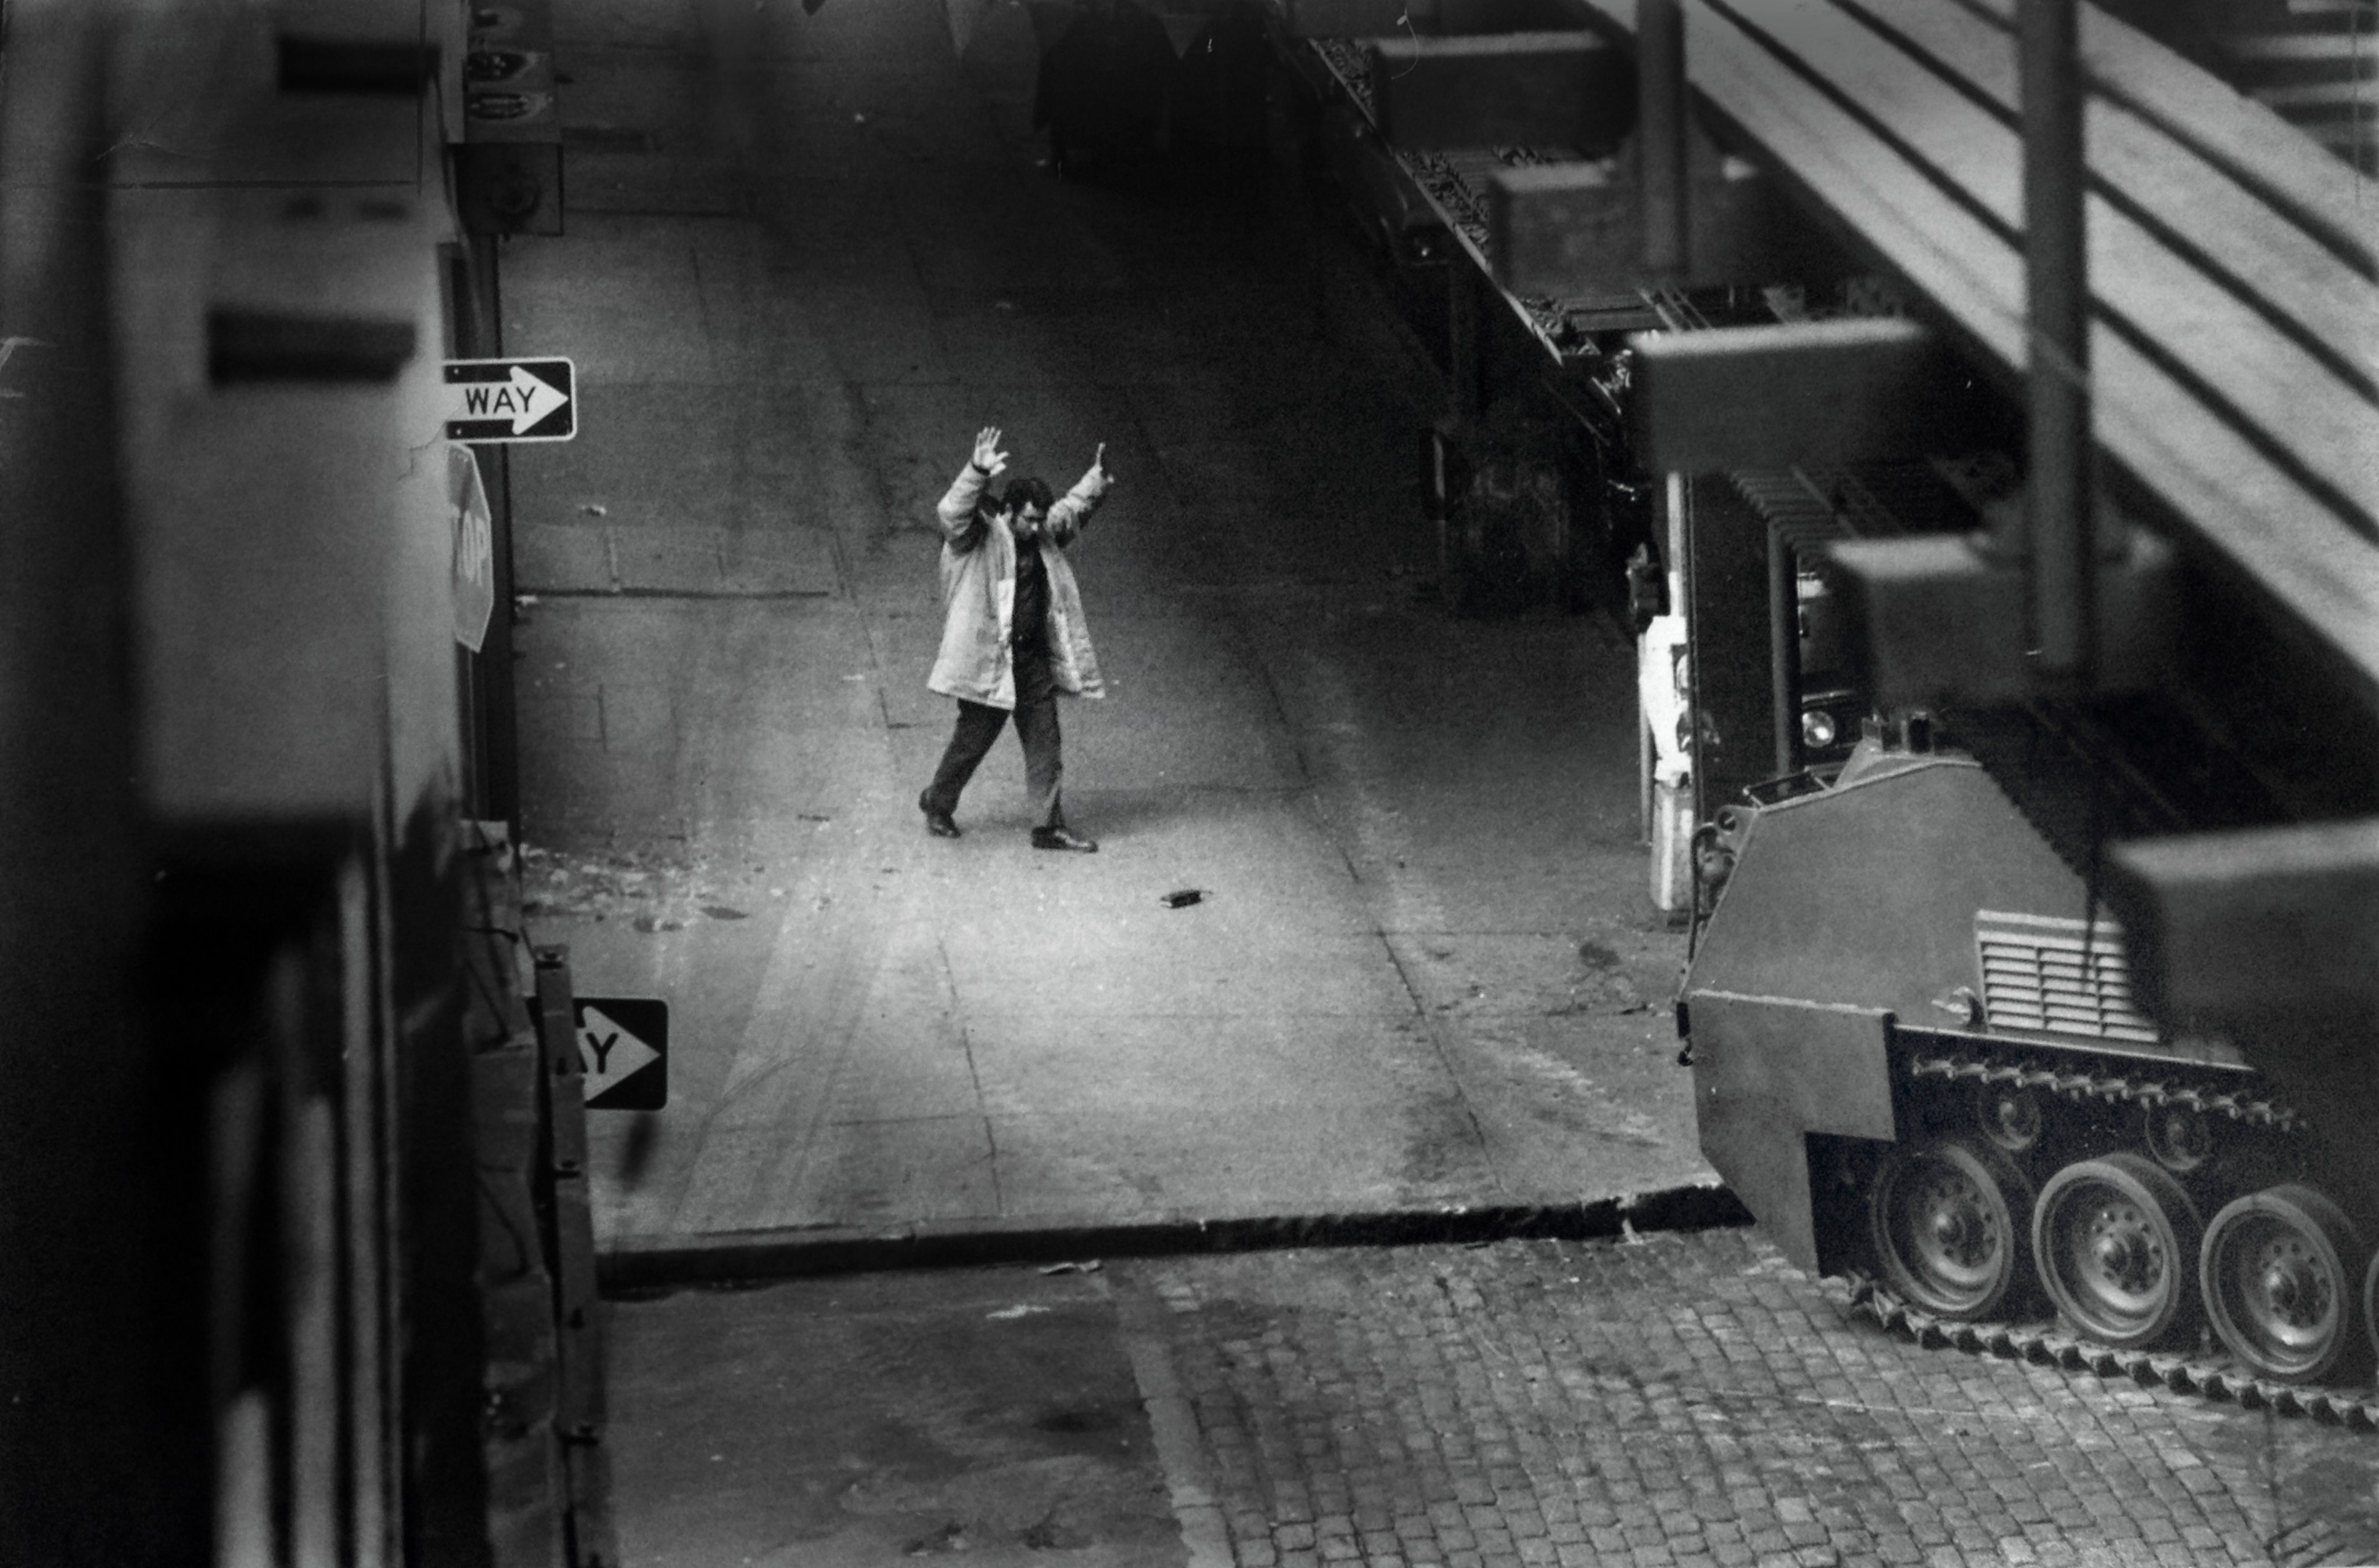 On a deserted New York street in black-and-white, a man walks towards a line of tanks with his hands held in the air.